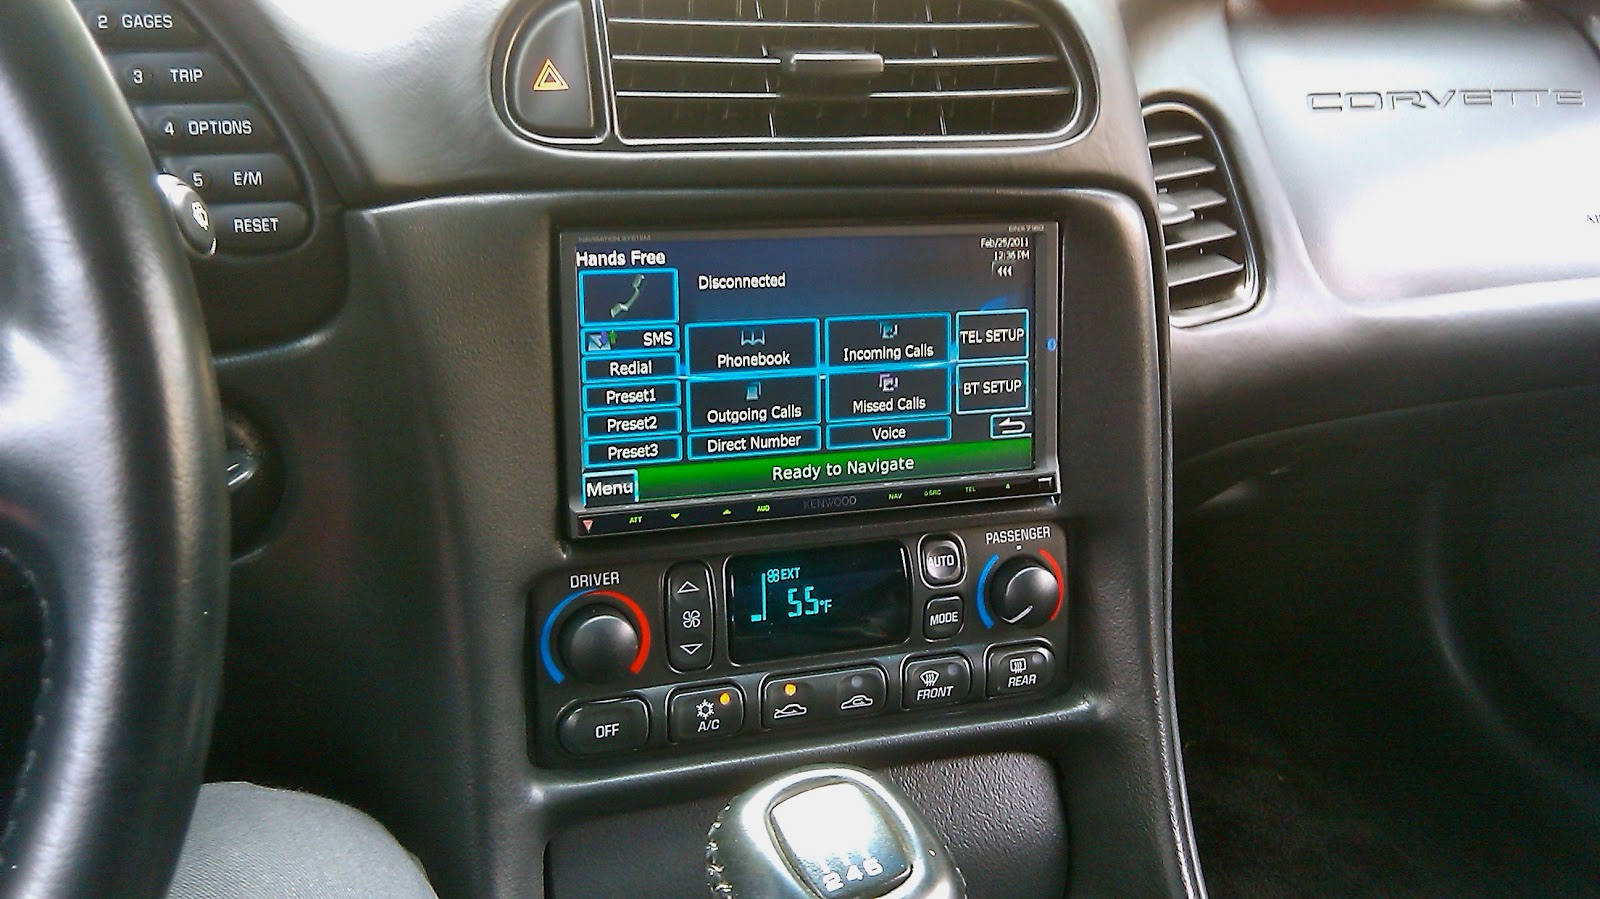 2007 Corvette Radio Wiring Diagram Trusted 2000 Chevy Venture Stereo 2001 Tahoe 38 Images Mercedes 1998